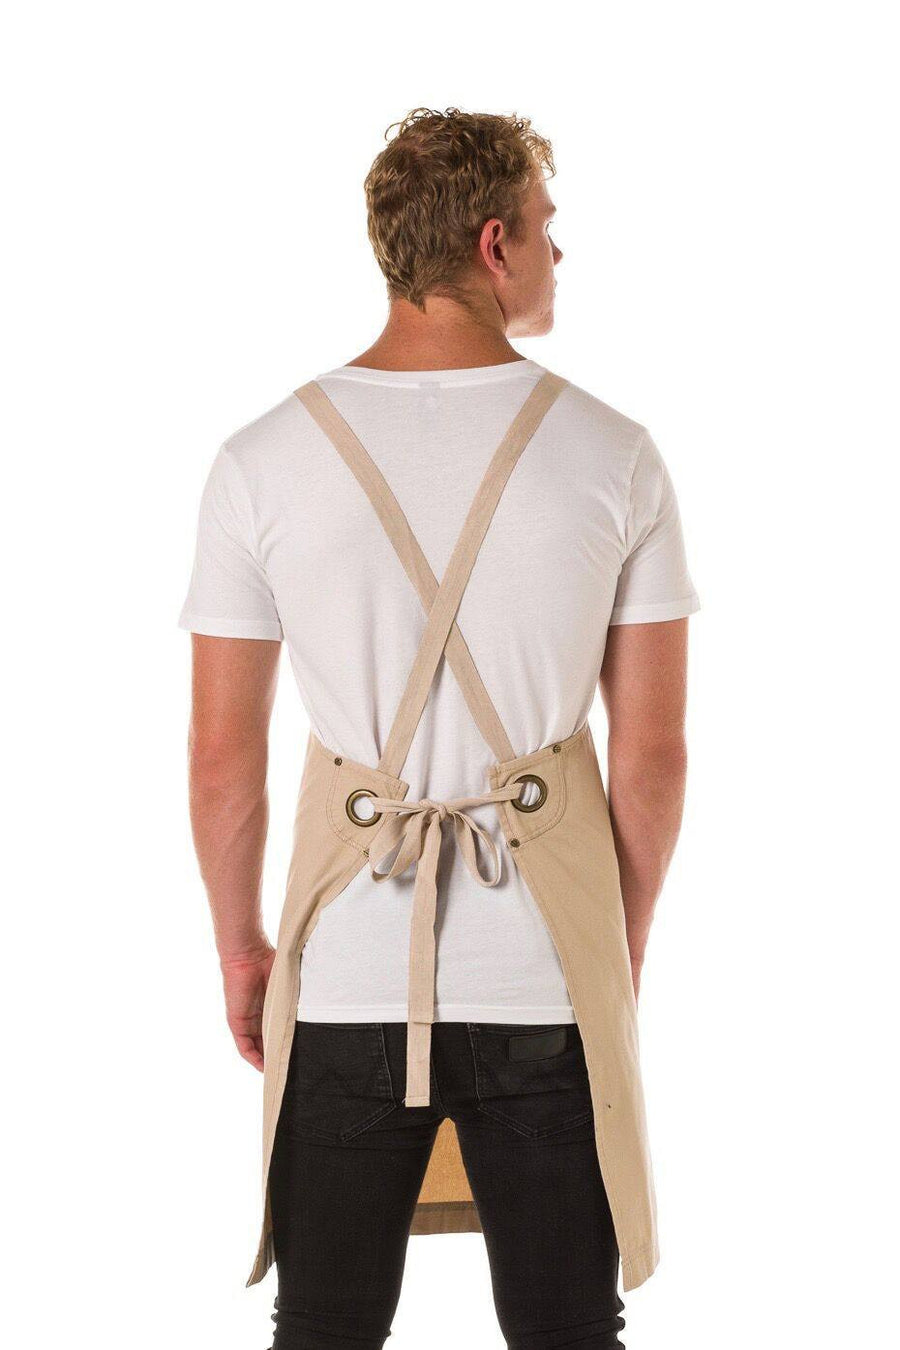 ARCHIE Apron with textured tape straps - Stone Canvas